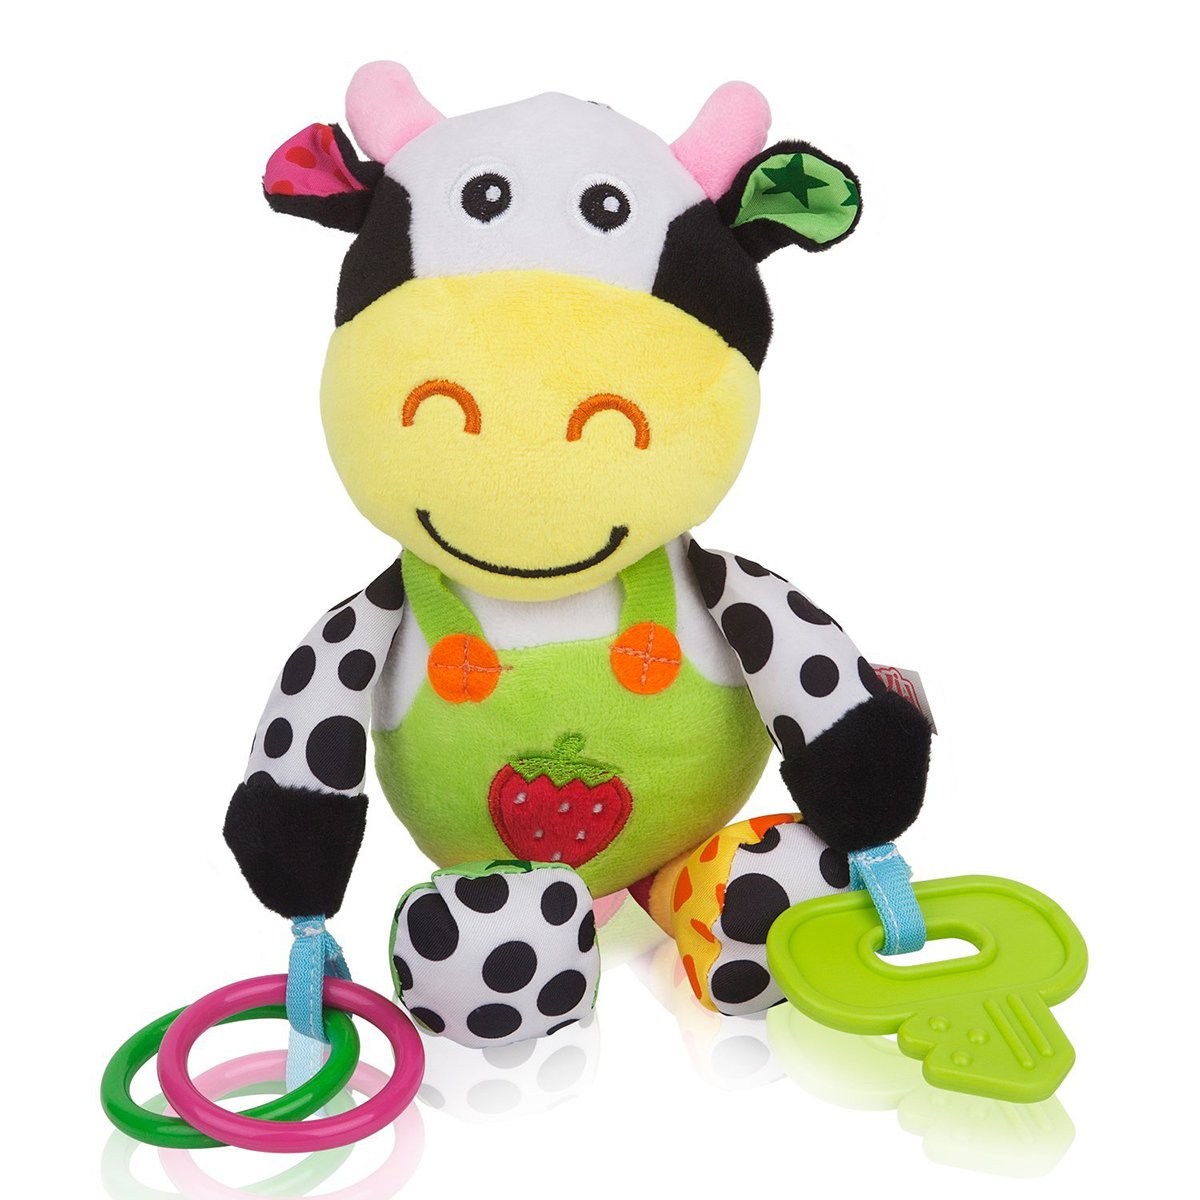 NUOLUX Stroller Car Seat Toy Kids Baby Bed Crib Cot Pram Hanging Musical Toy Pendant (Cow) by NUOLUX (Image #1)